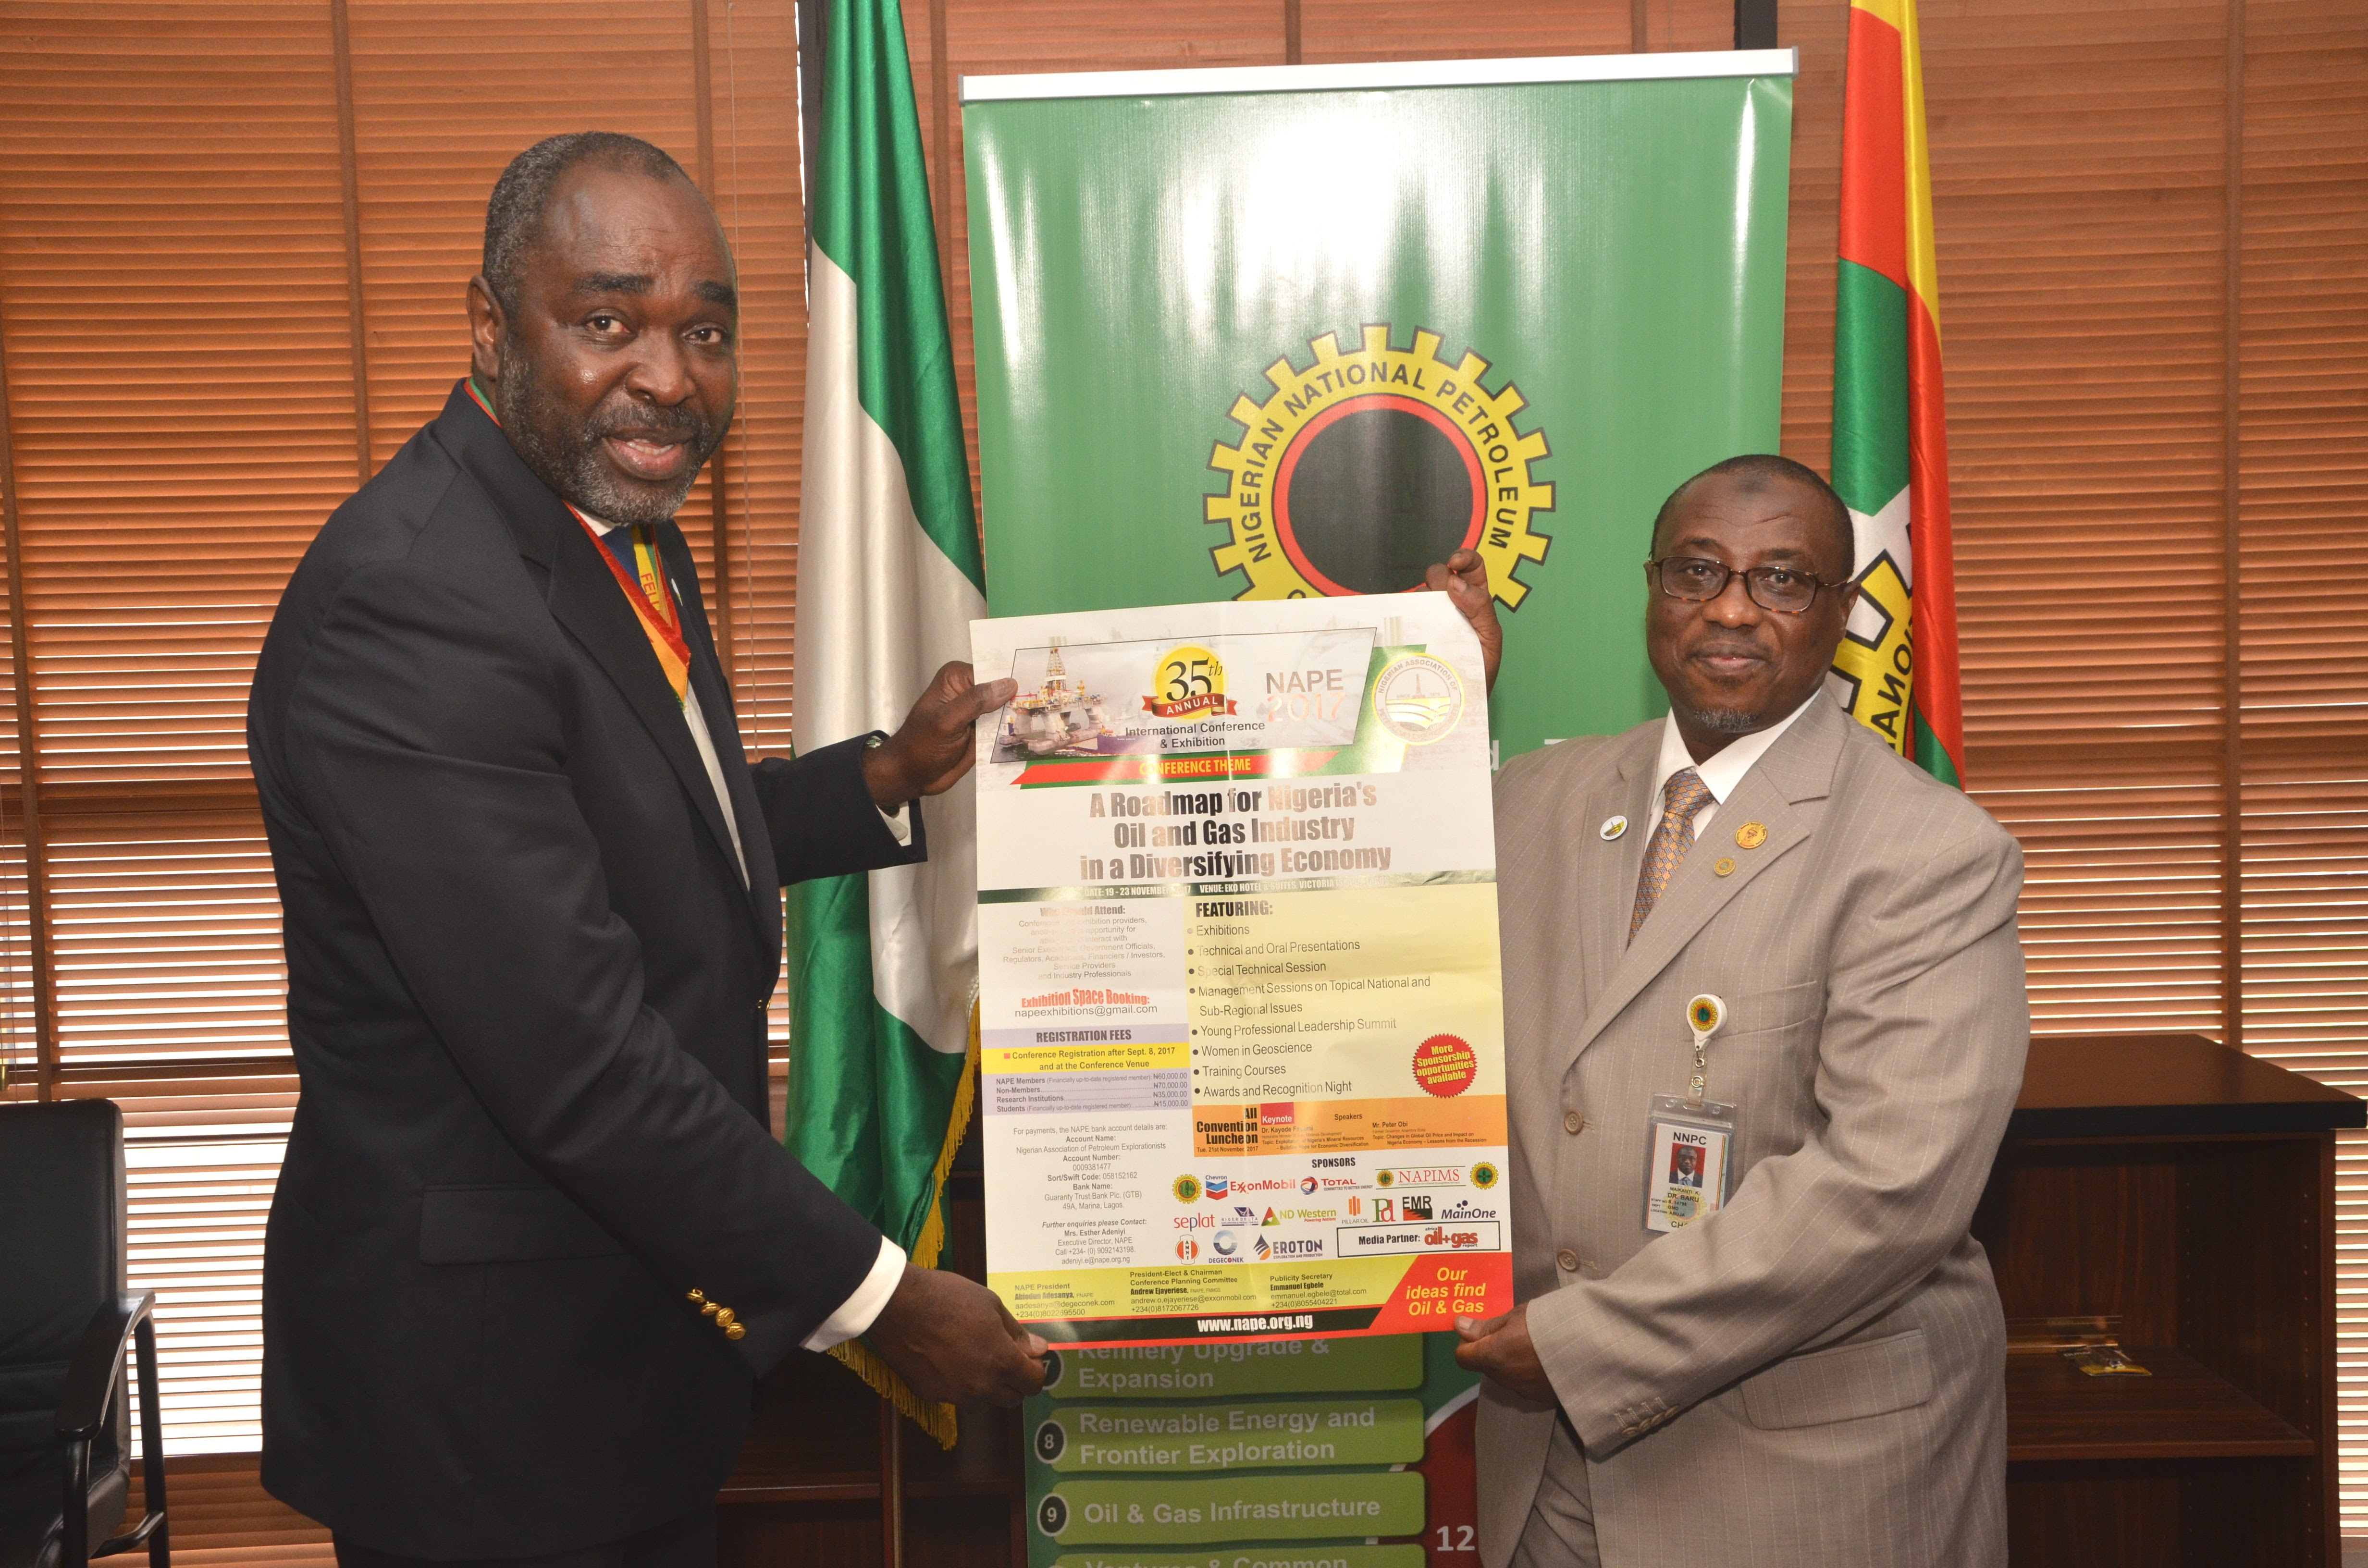 NNPC confident of commercial hydrocarbon discovery in inland basins